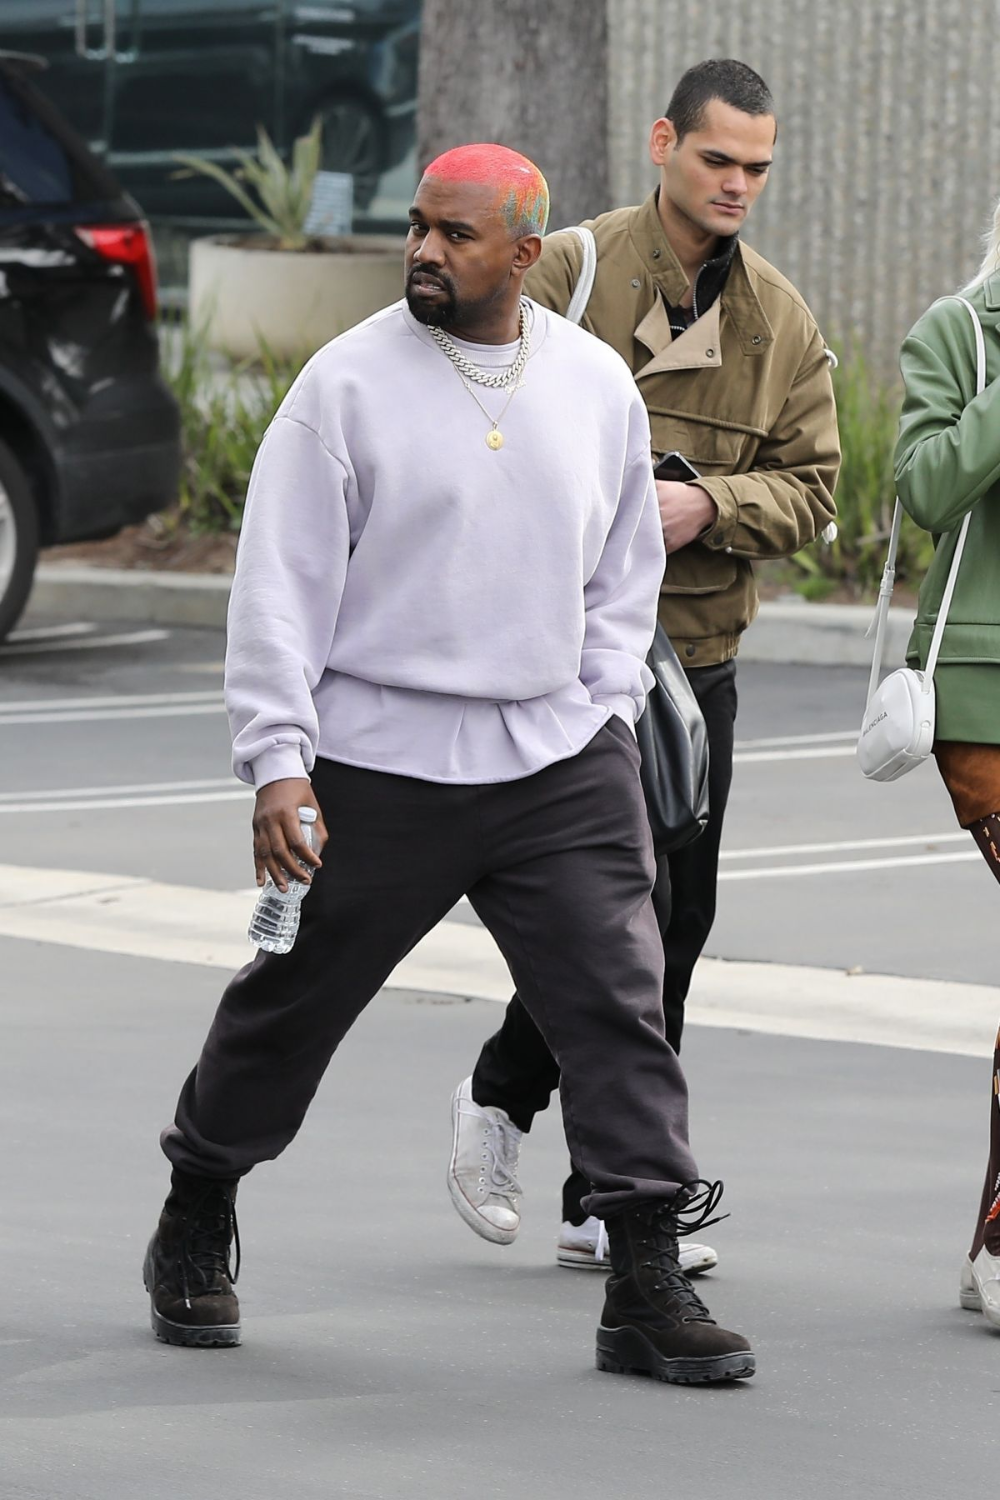 Google Image Result For Https Www Bet Com Style Beauty 2019 02 22 Kanye New Rainbow Hair Jcr Content Bodycopycontainer Emb In 2020 Kanye West Style Kanye West Style